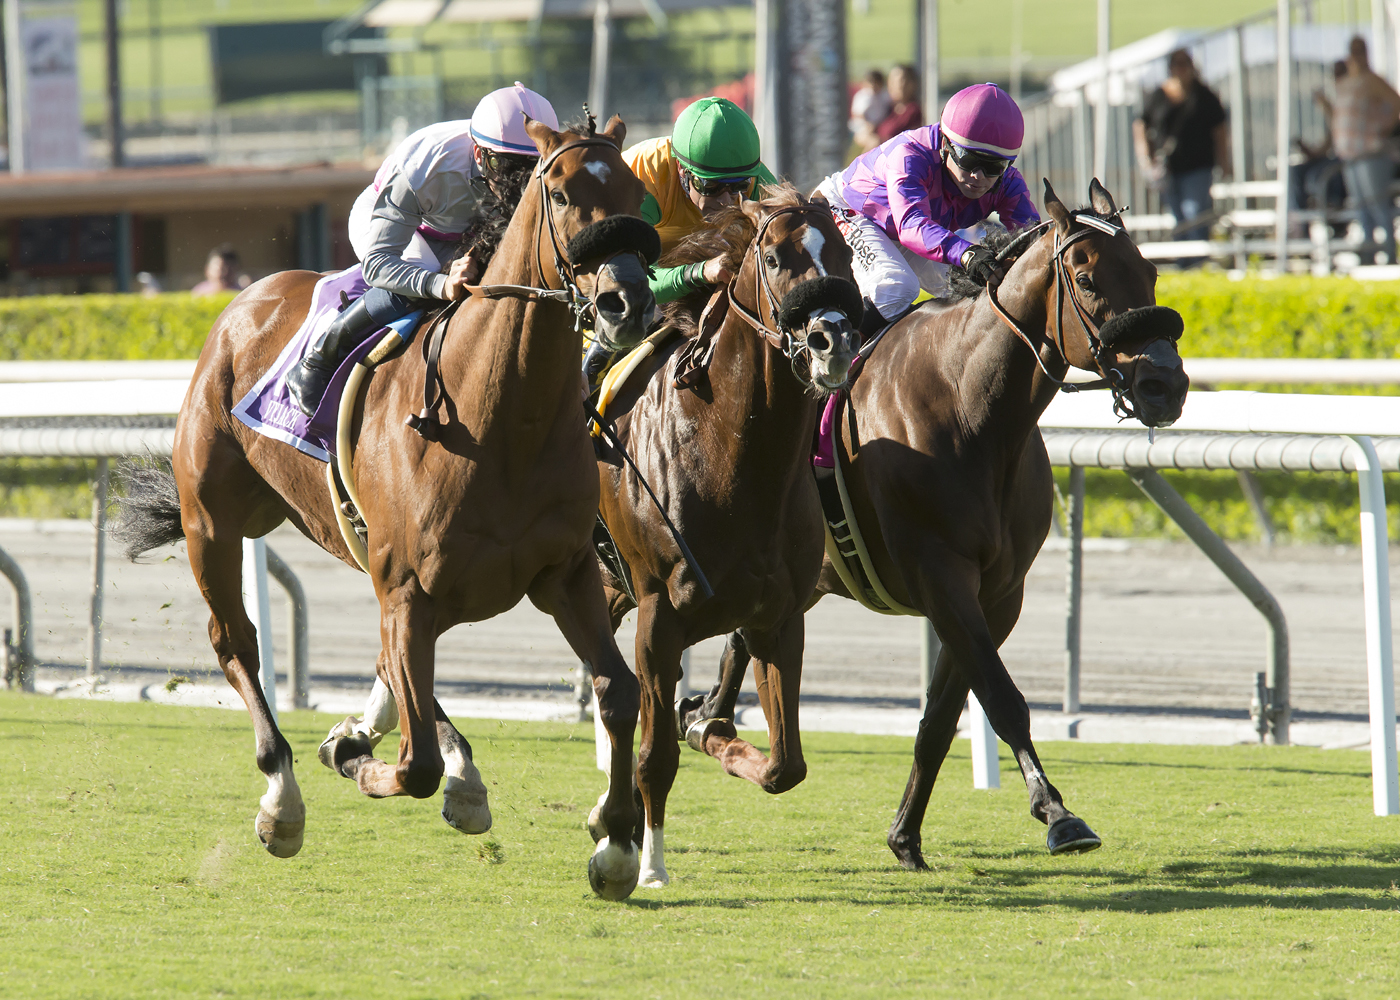 In a photo provided by Benoit Photo, Vyjack and jockey Flavien Prat, left, overpower Om, with Gary Stevens, middle, and Obviously, with Tyler Baze, to win the Grade II, $200,000 City of Hope Mile horse race Saturday, Oct. 8, 2016, at Santa Anita in Arcadi